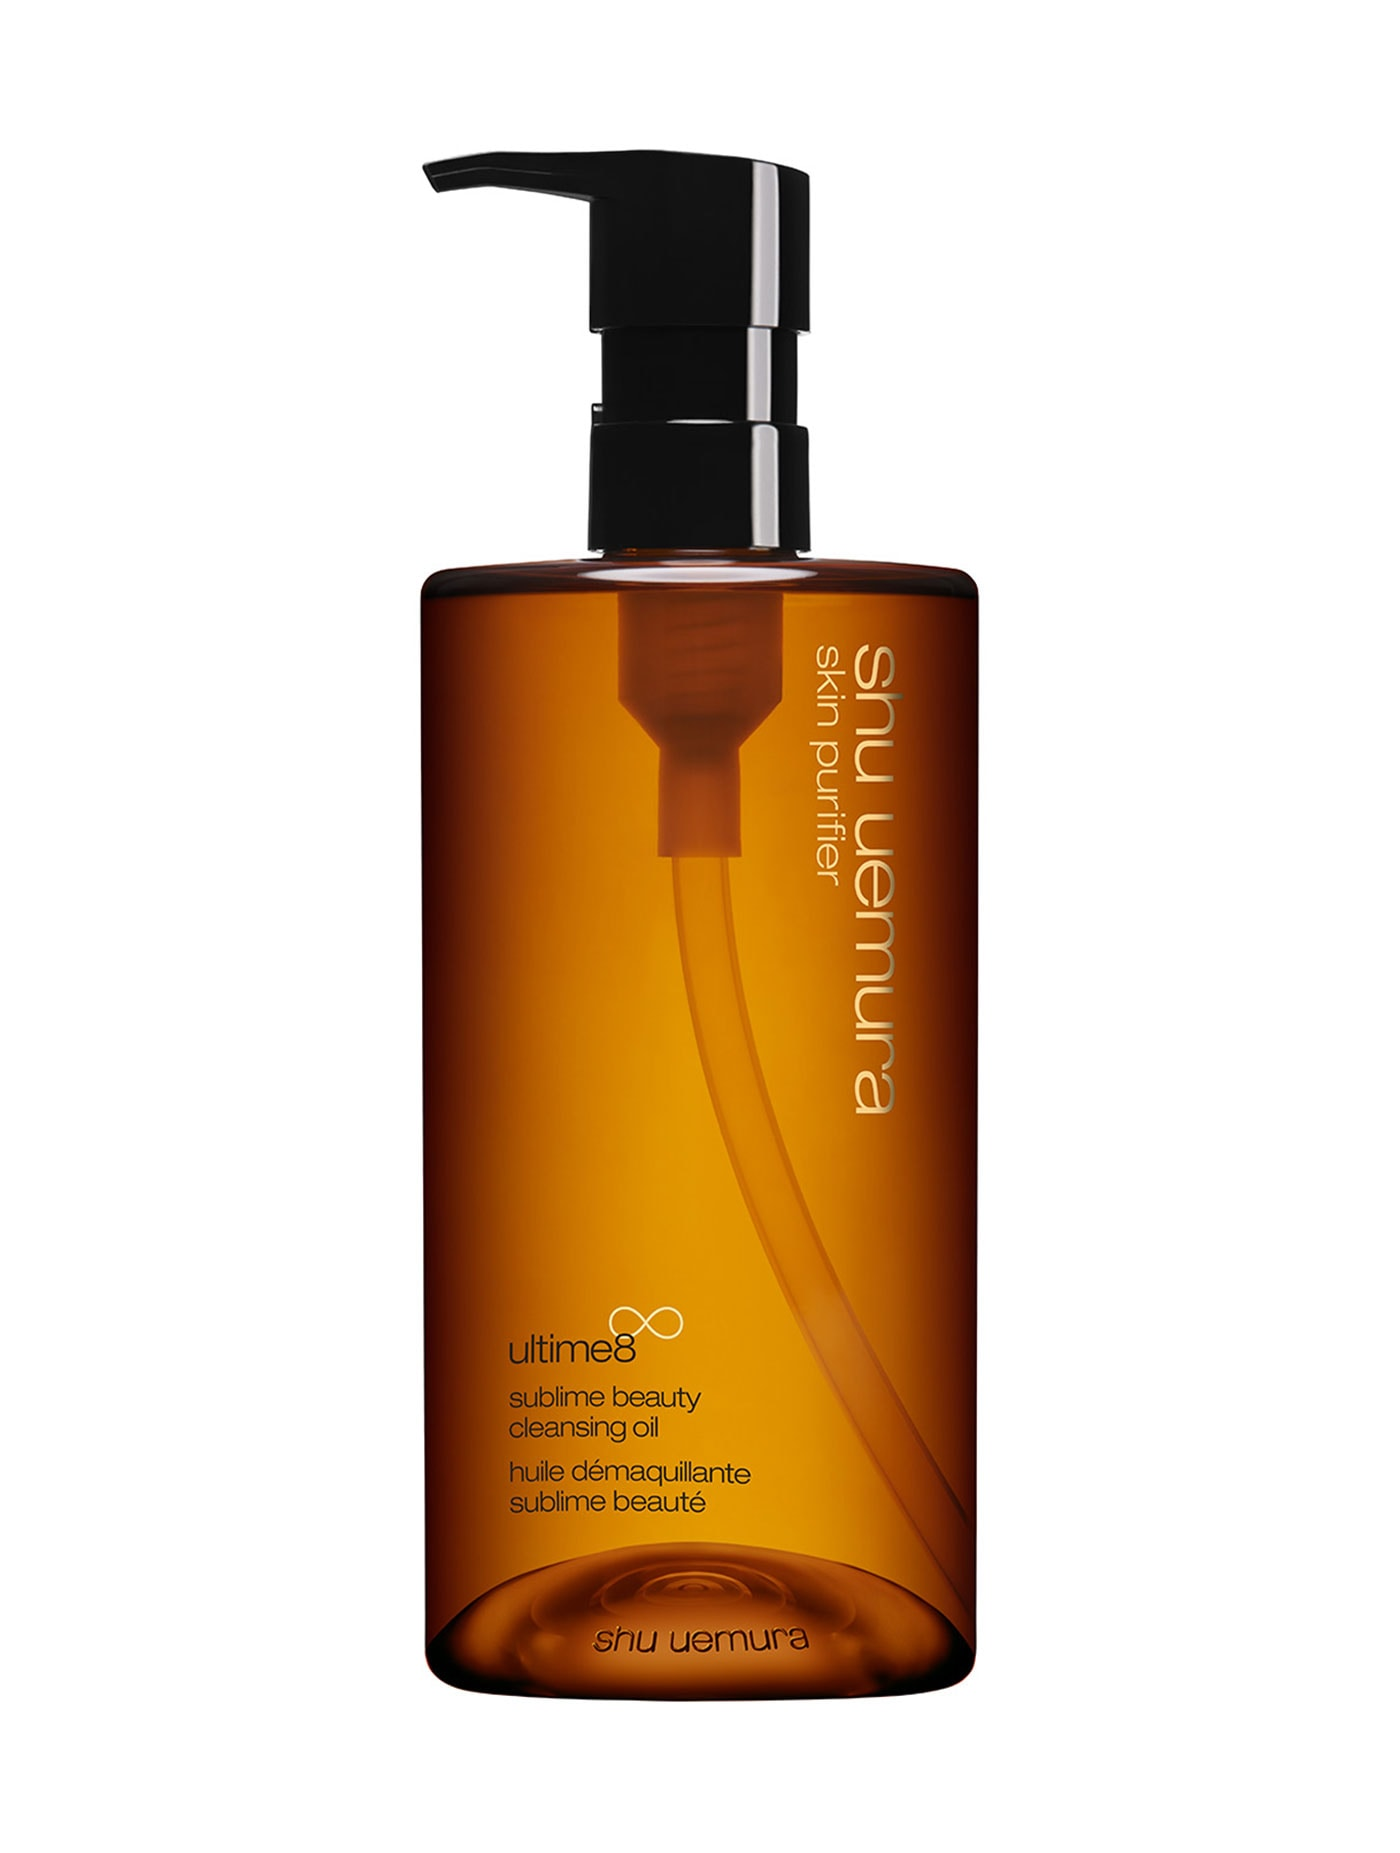 37bf628c7 คลีนซิ่ง Ultime 8 Sublime Beauty Cleansing Oil ขนาด 450 มล.